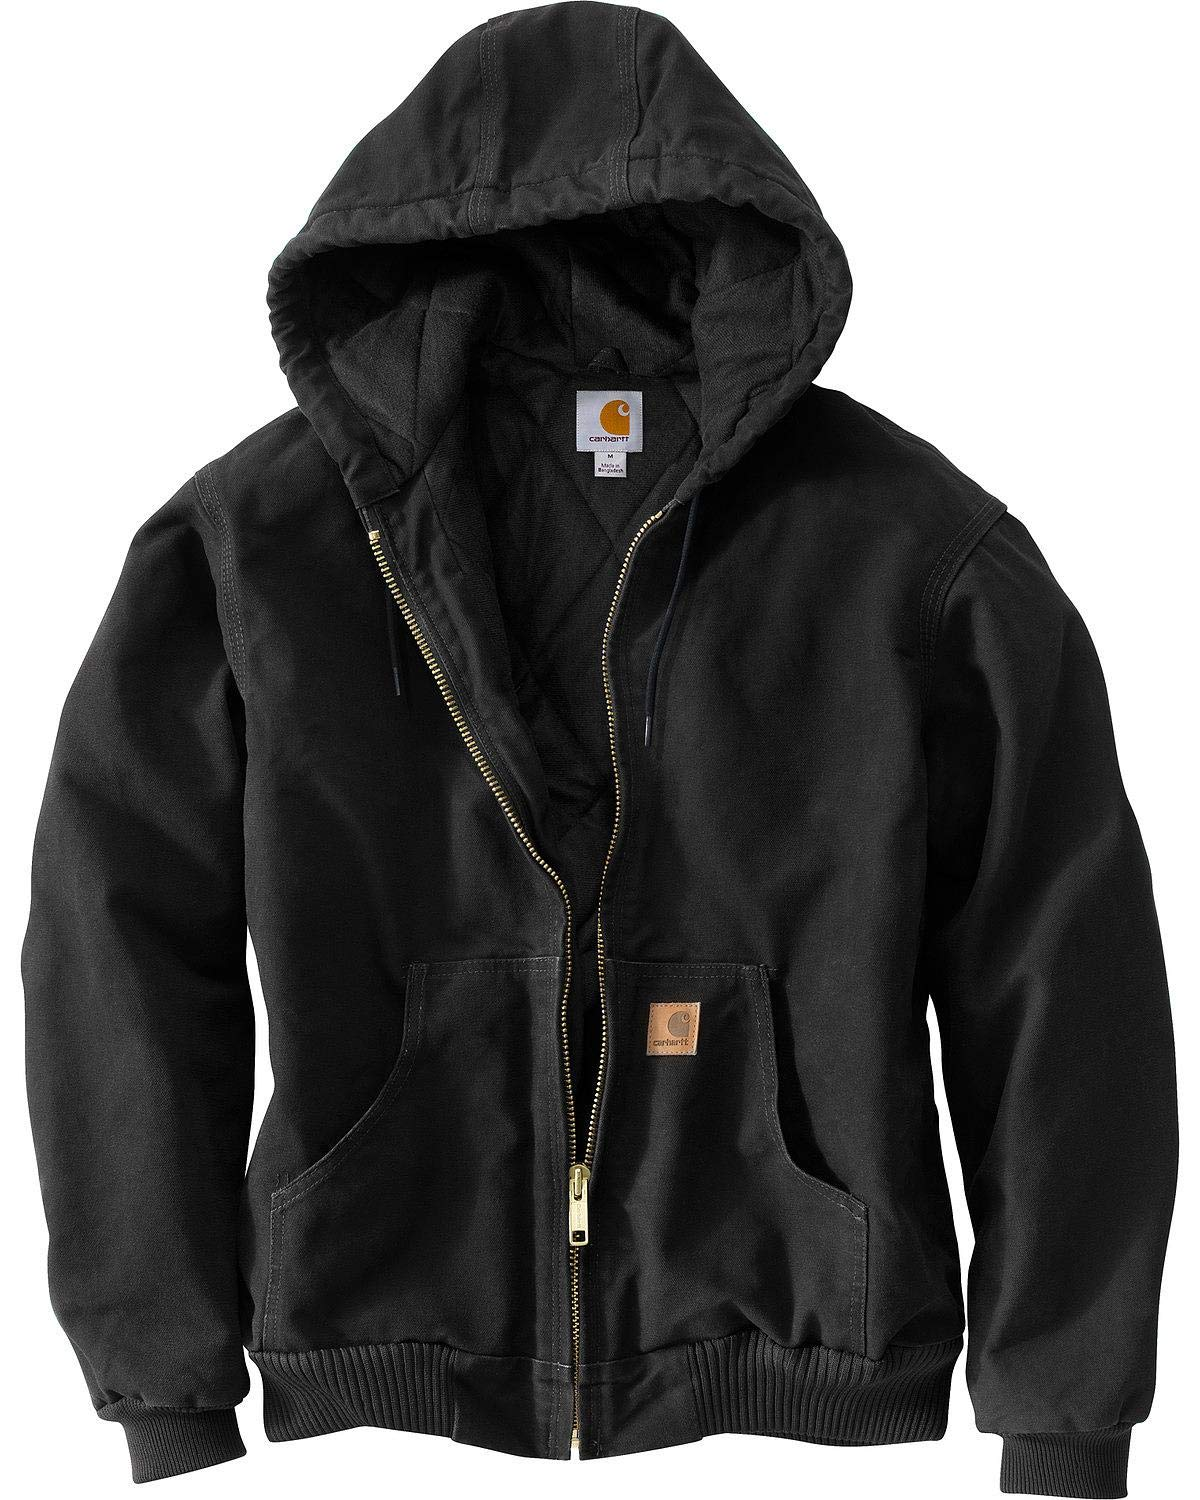 Carhartt Men's Big & Tall Quilted Flannel Lined Sandstone Active Jacket J130,Black,Large Tall by Carhartt